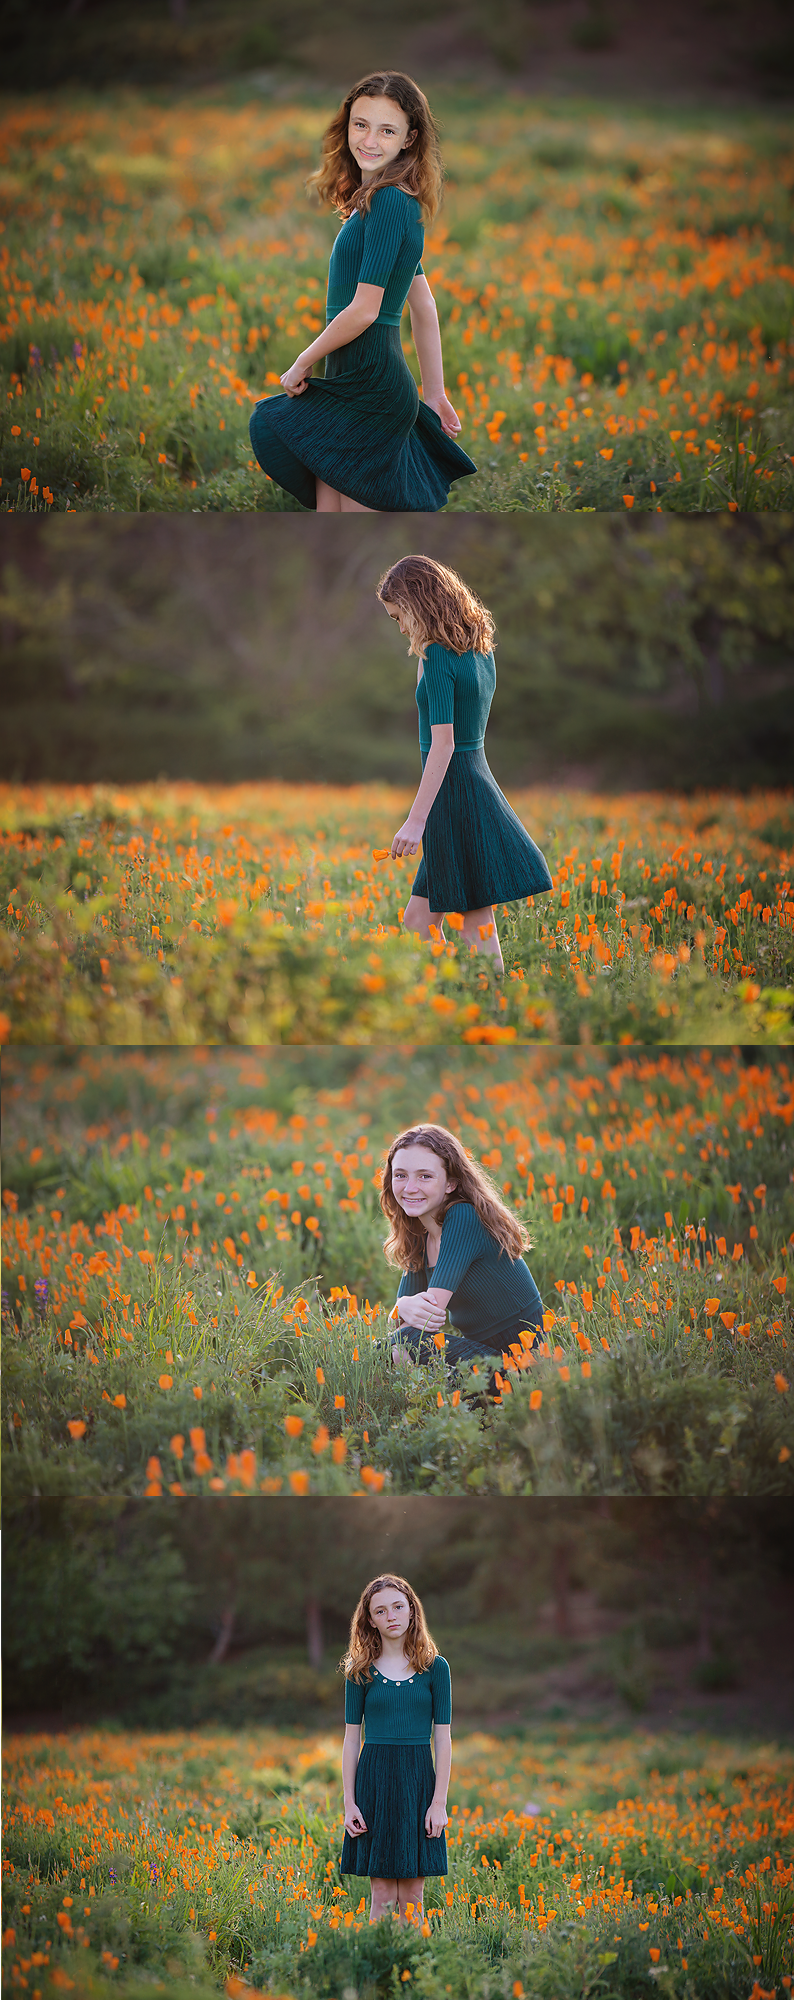 Outdoor photographer in Westlake Village